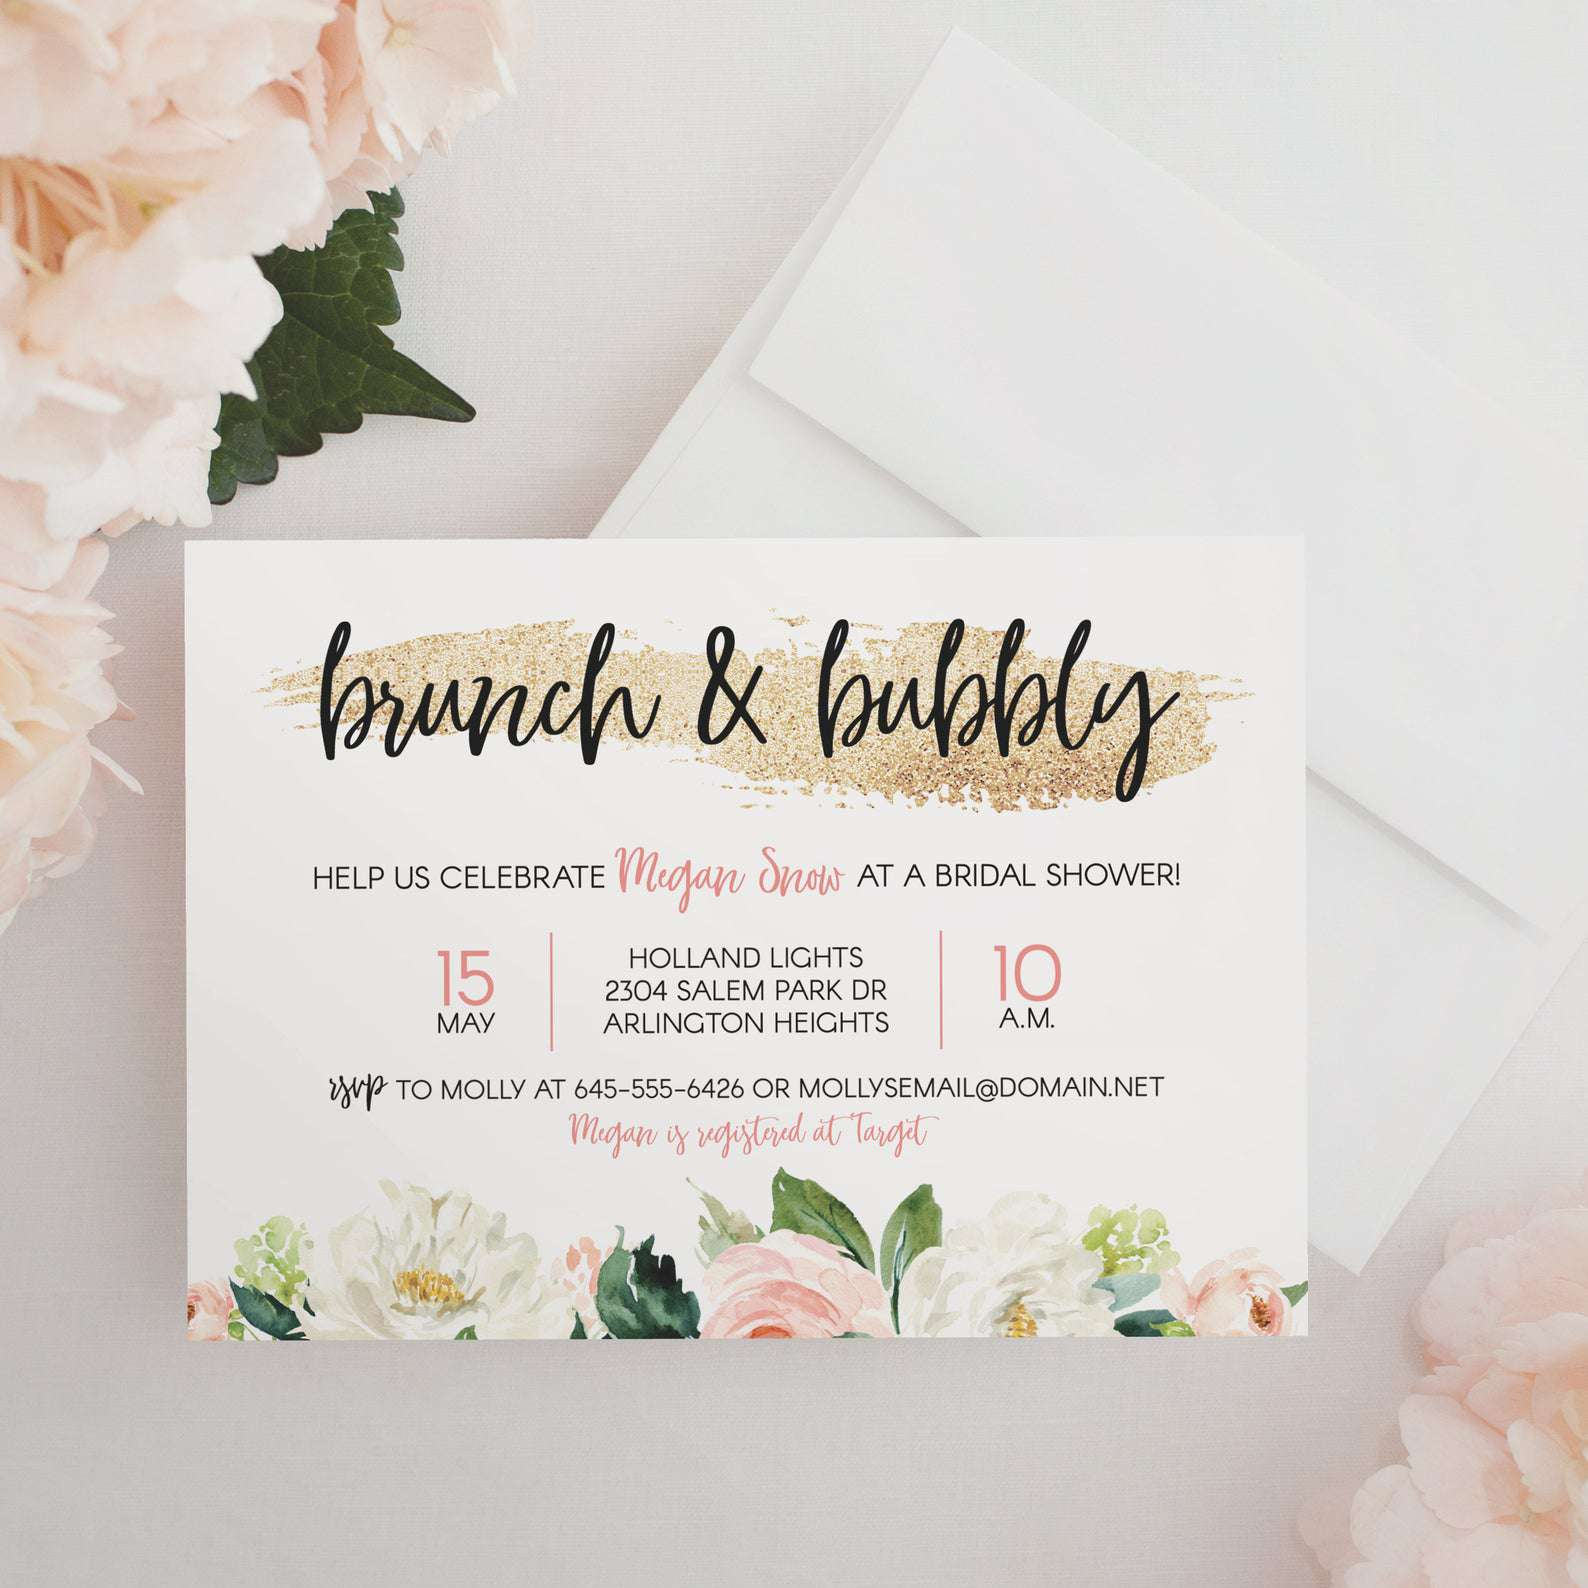 Bridal Shower Invitation Wording 101: Everything To